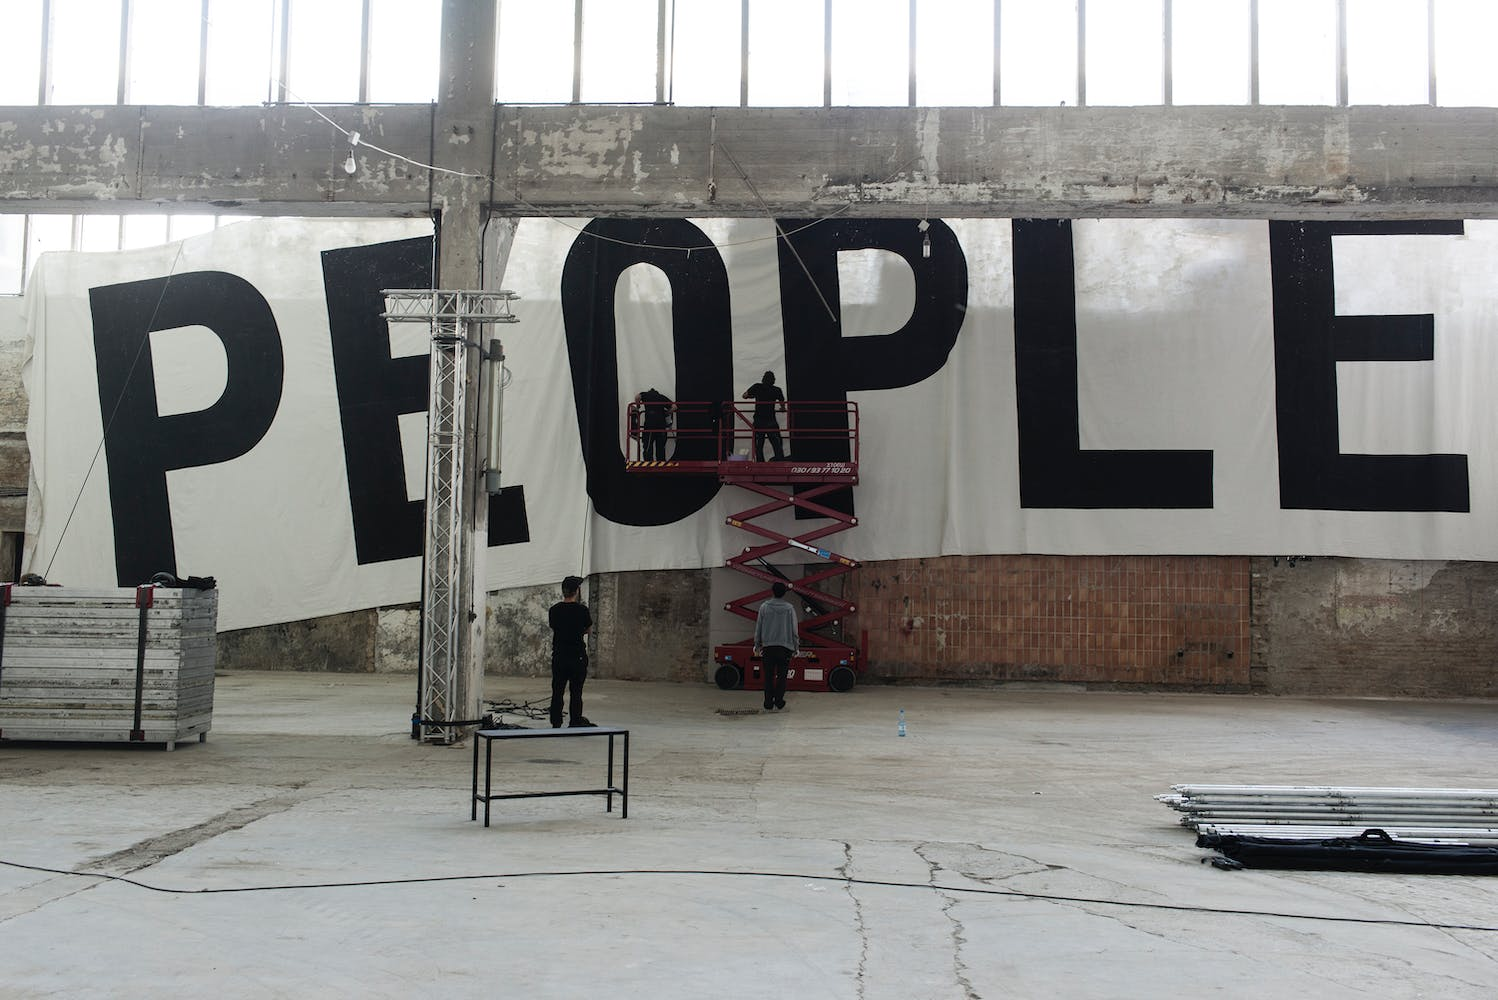 """People hanging a large scale horizontal mural cloth mural that says """"PEOPLE"""" in large black letters"""